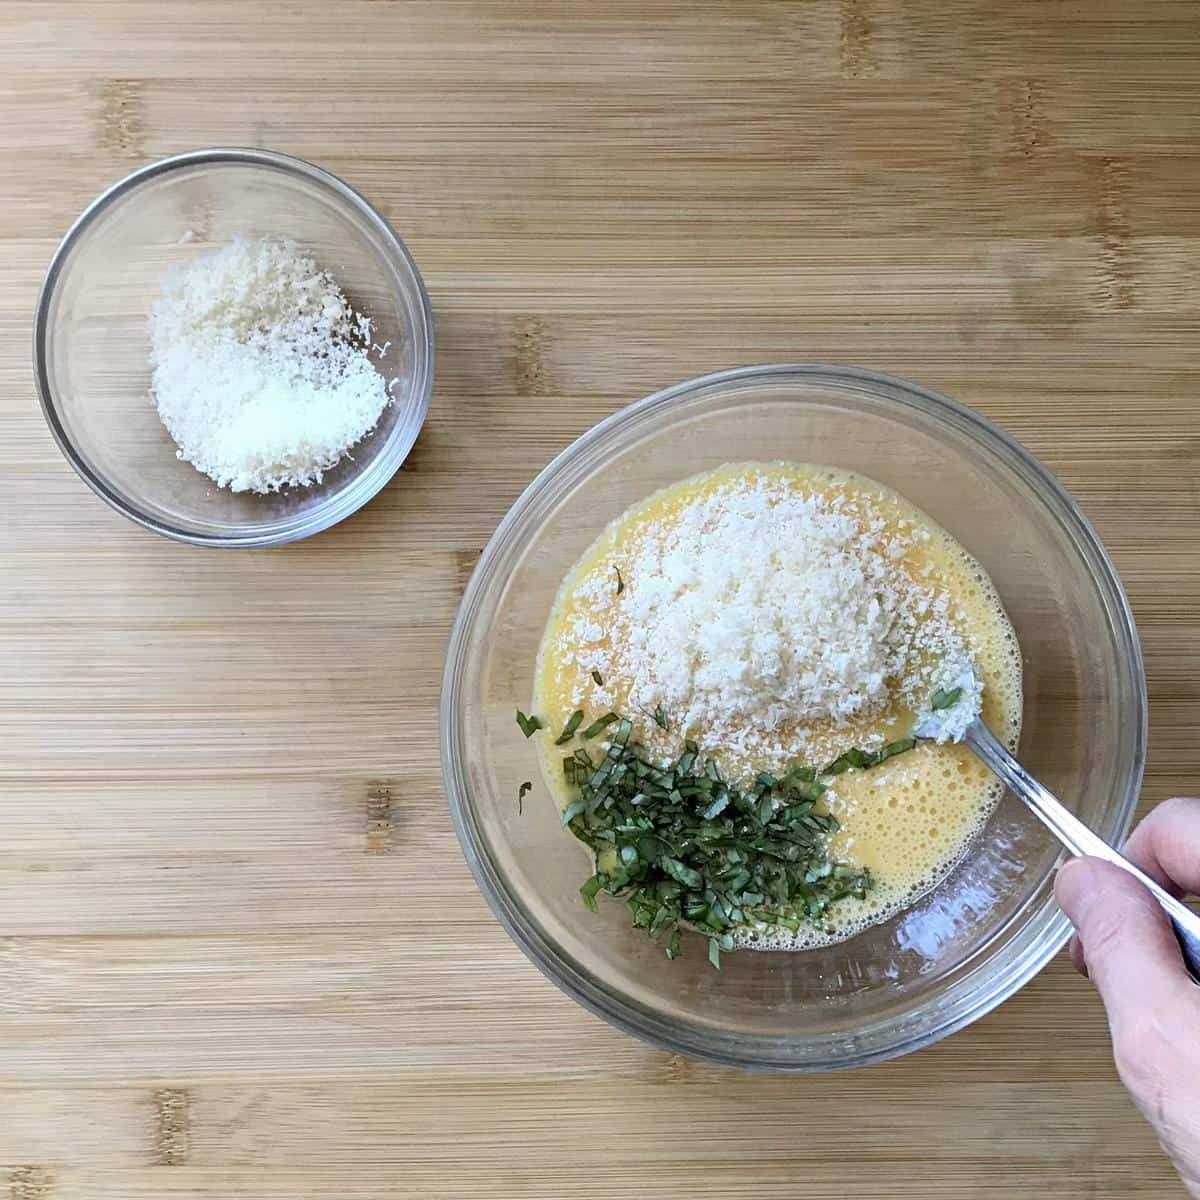 Grated cheese and fresh herbs added to eggs in a bowl.